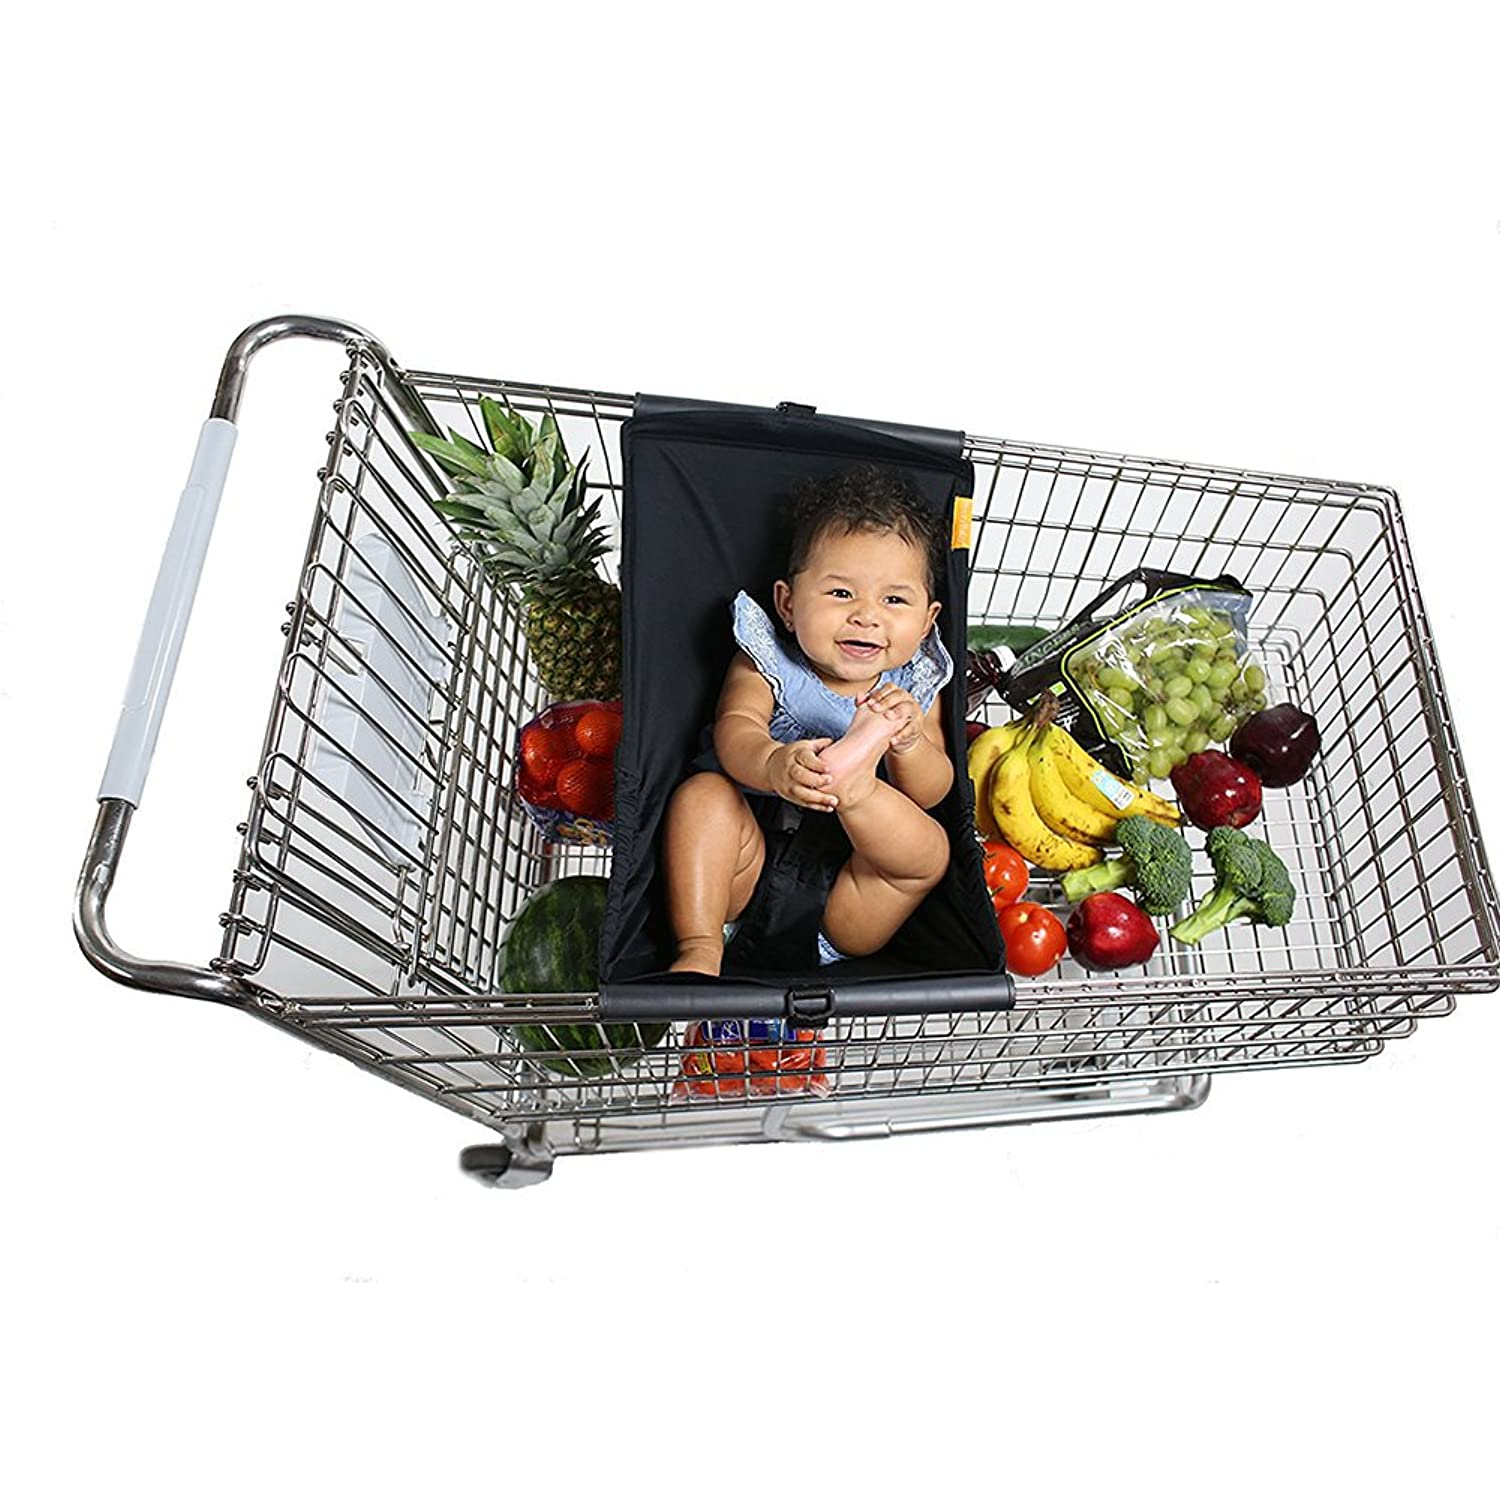 Baby Creative Portable Shopping Cart Hammock Trolley Cot Bed Baby Supplies by J Hion